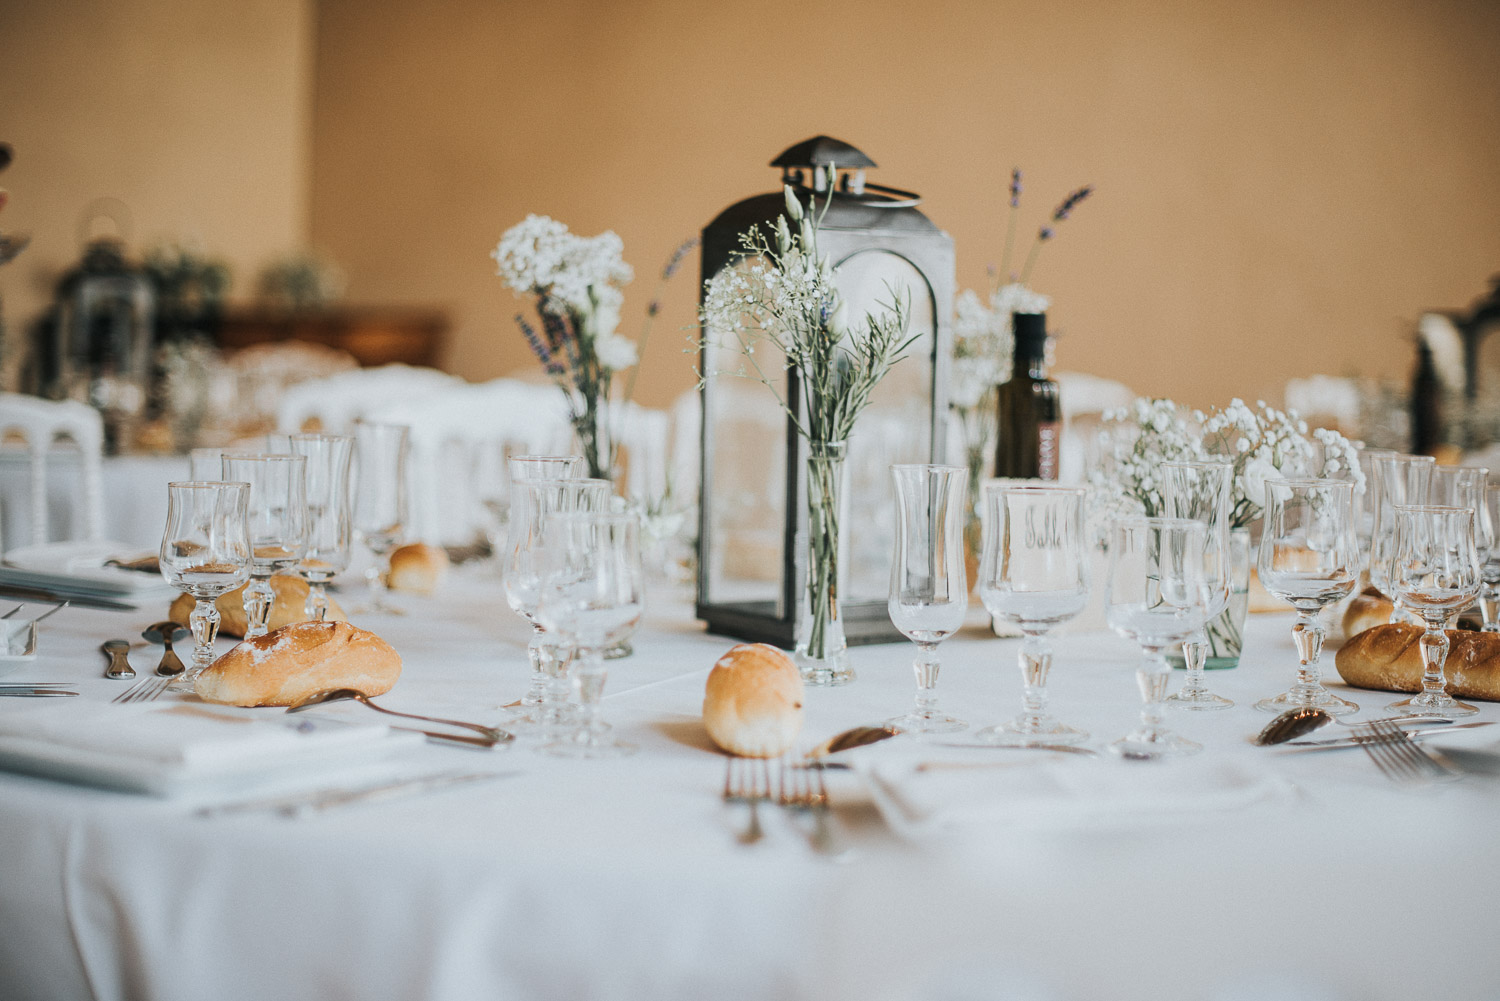 chateau_canet_carcassonne_wedding_katy_webb_photography_france_UK190